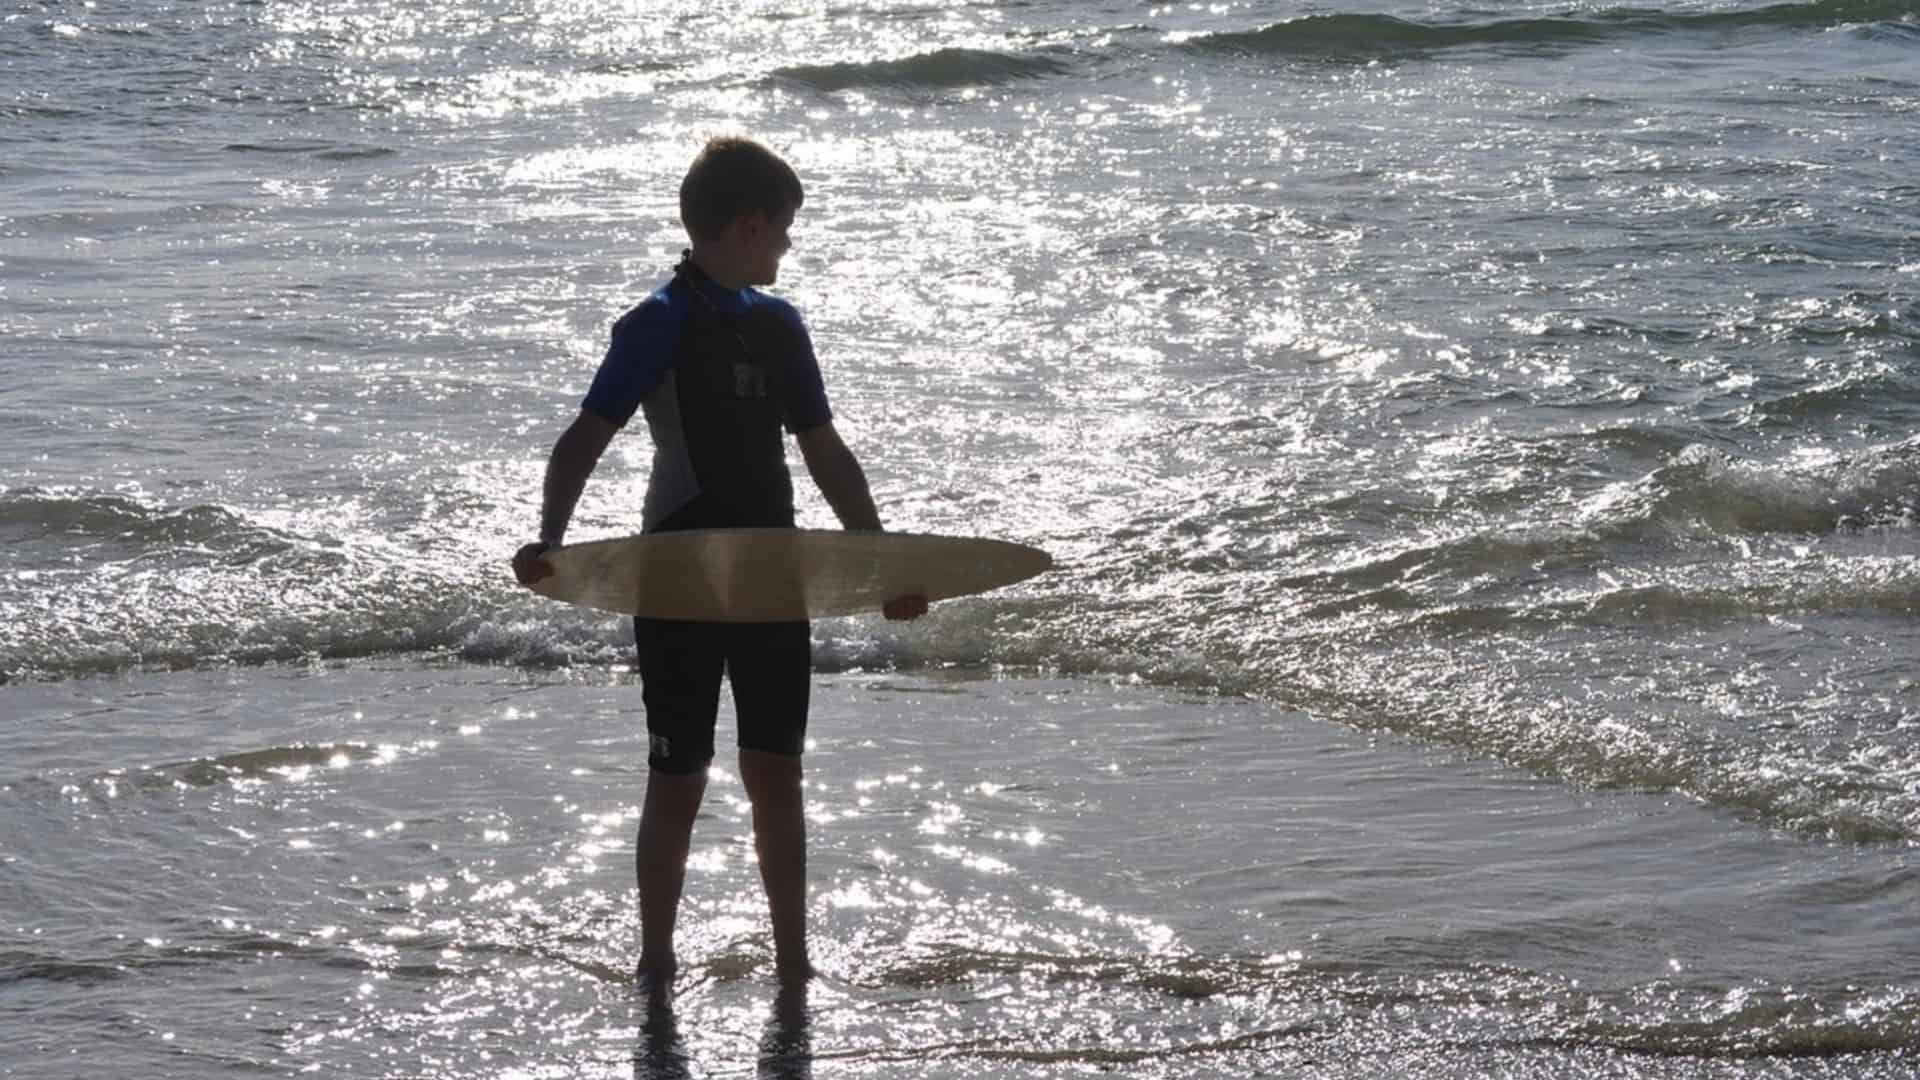 tips for skimboarding